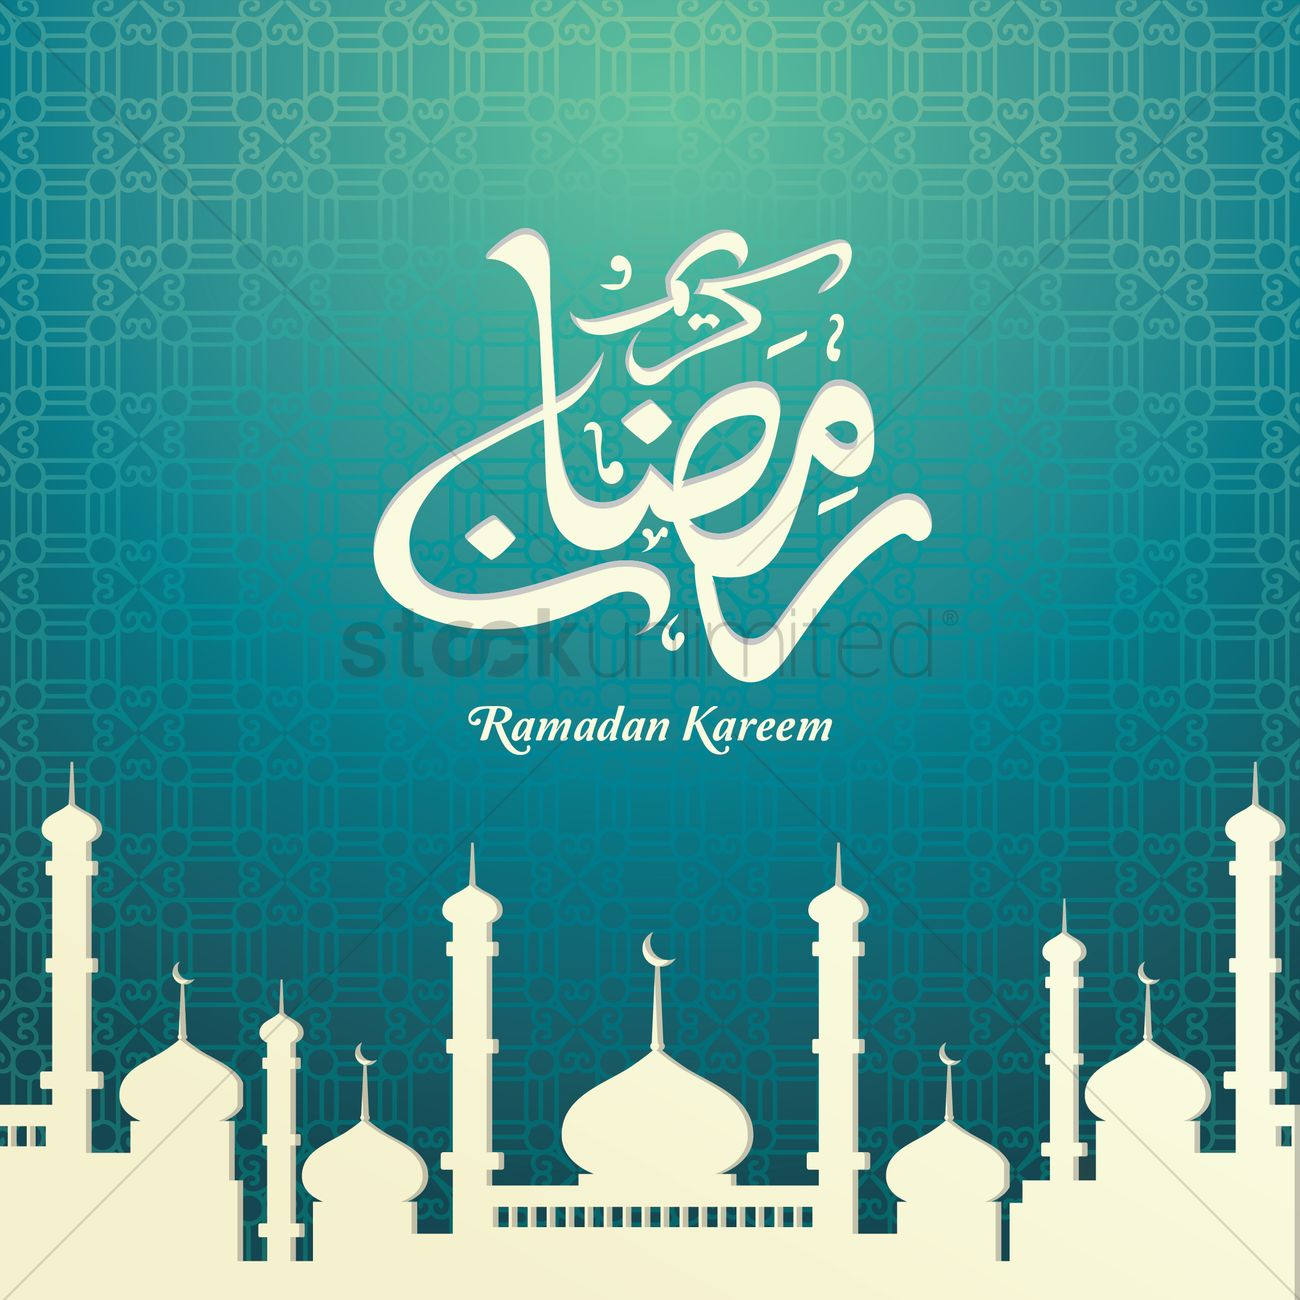 Ramadan Kareem Greeting In Jawi Vector Image 1826933 Stockunlimited